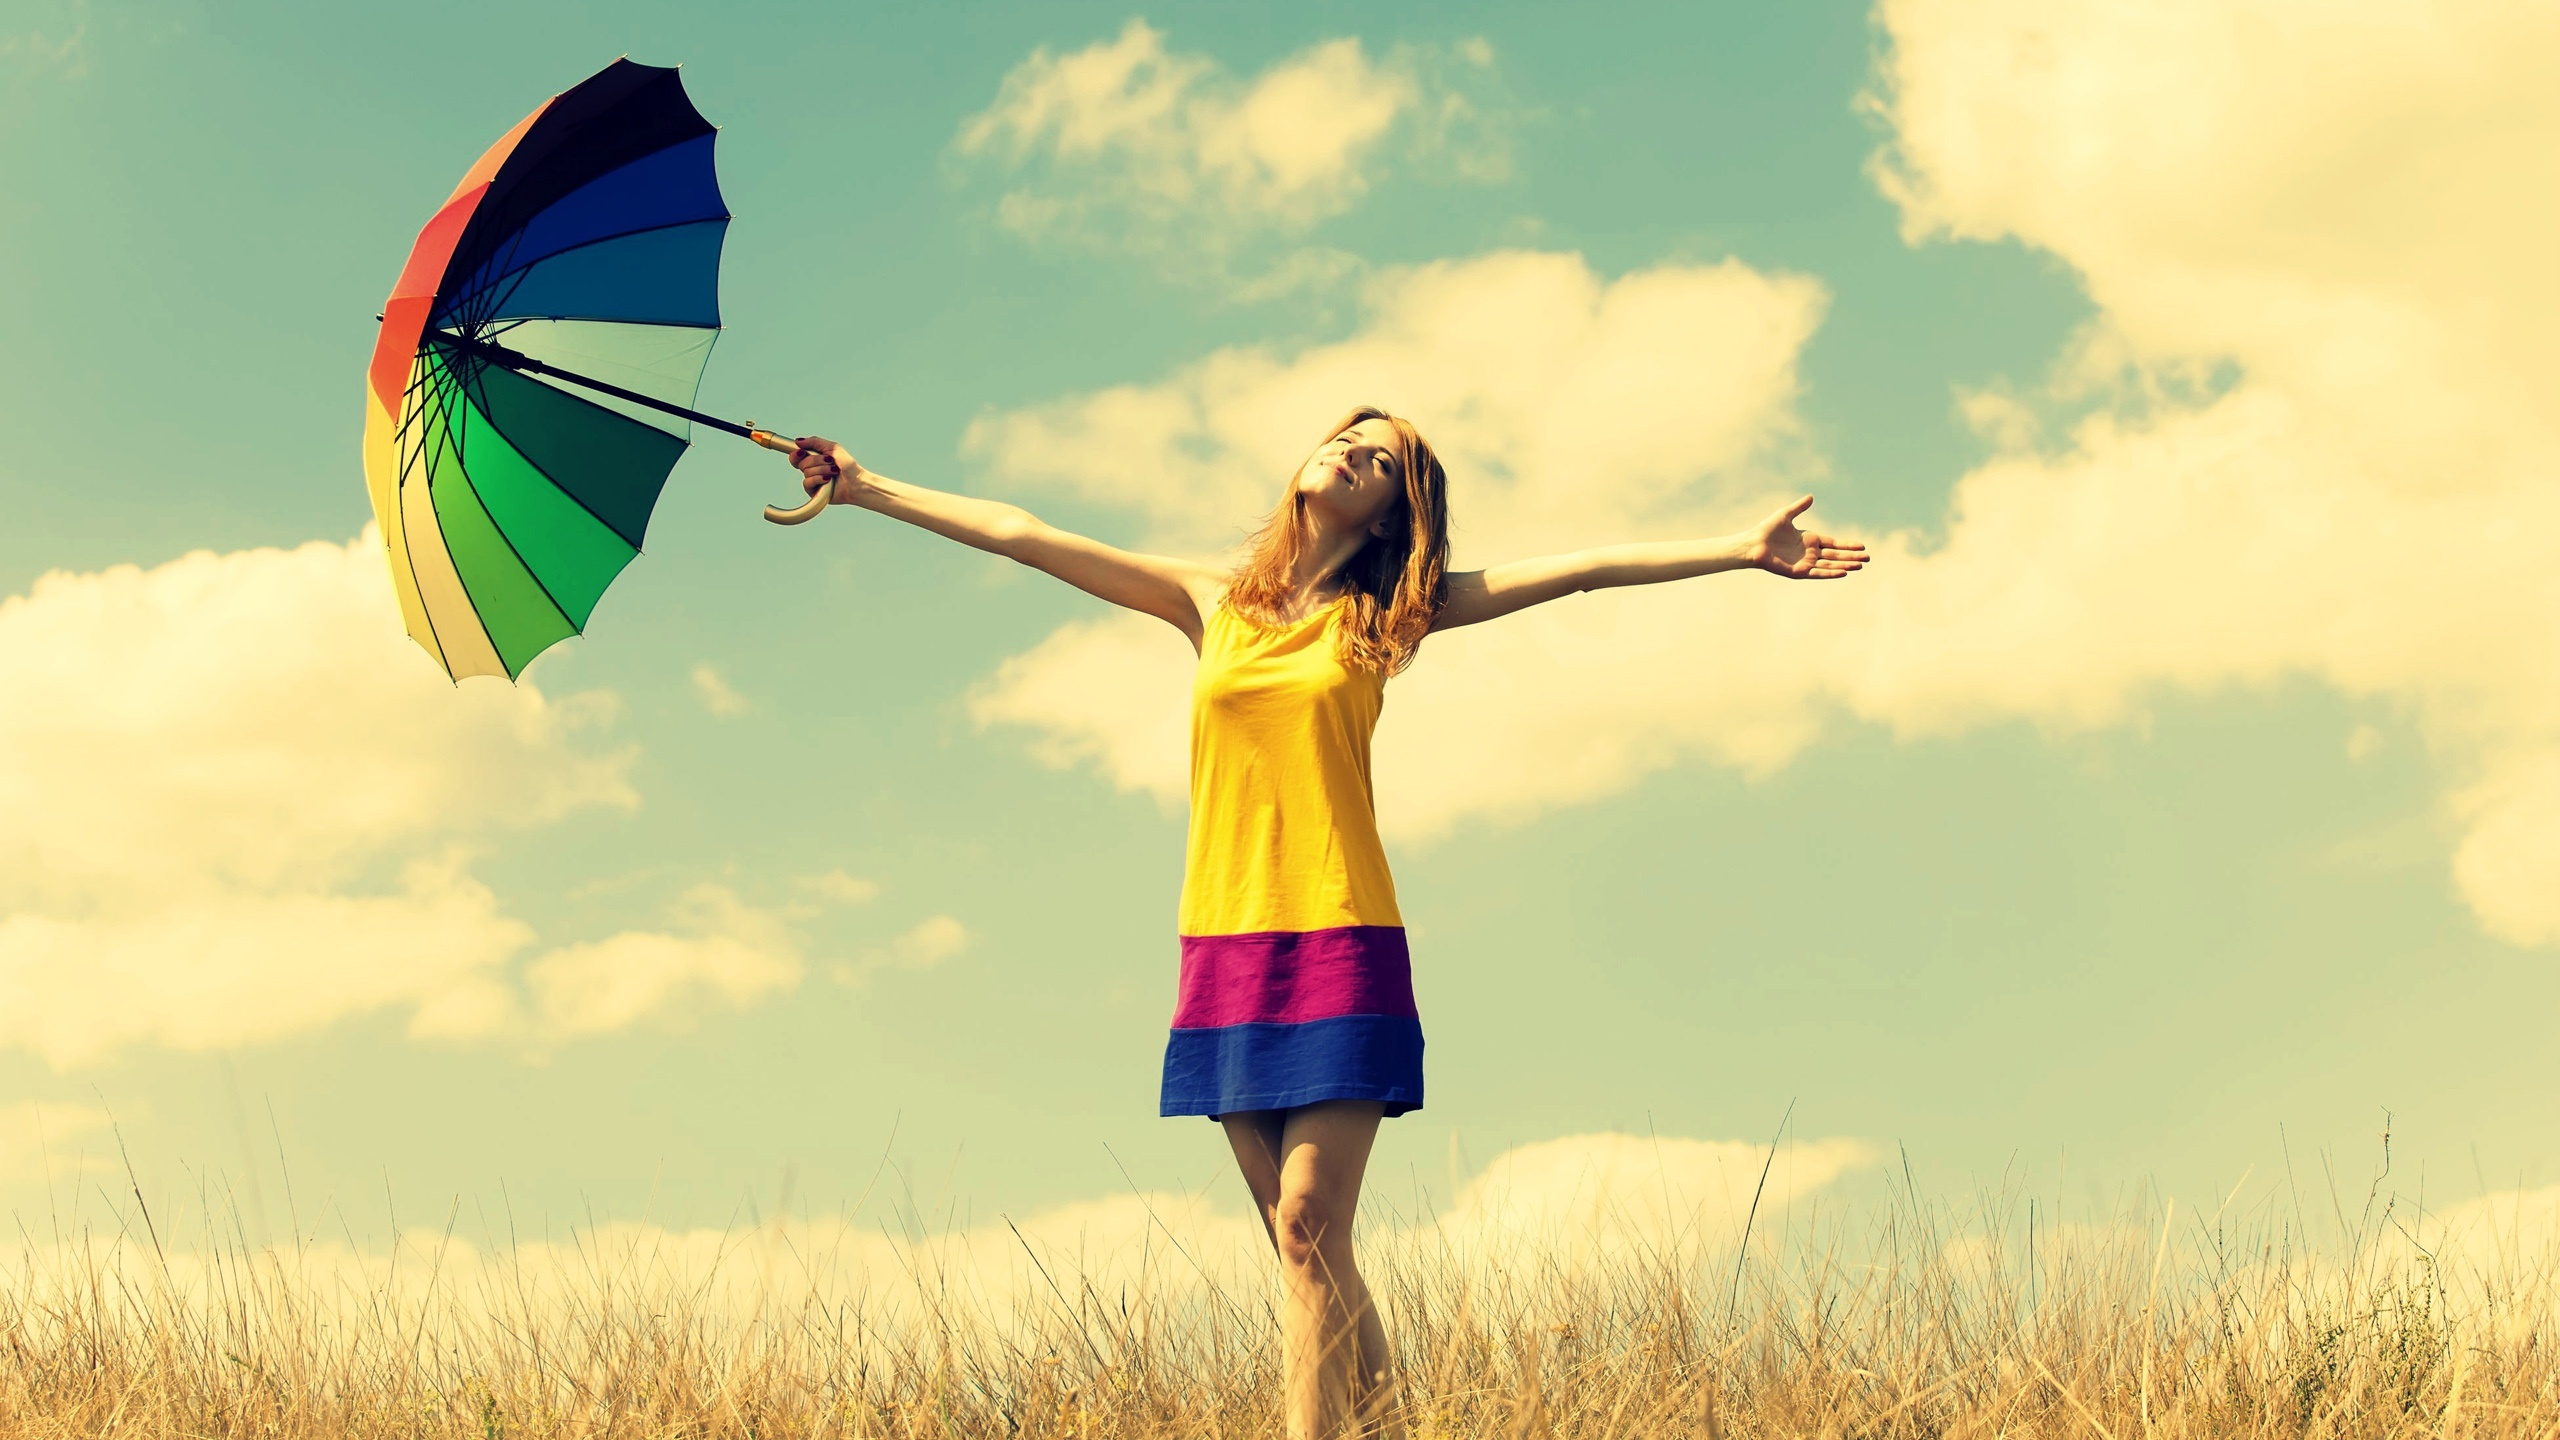 Happiness-girl-rainbow-umbrella-warmth-nature-sky-clouds_2560x1440.jpg